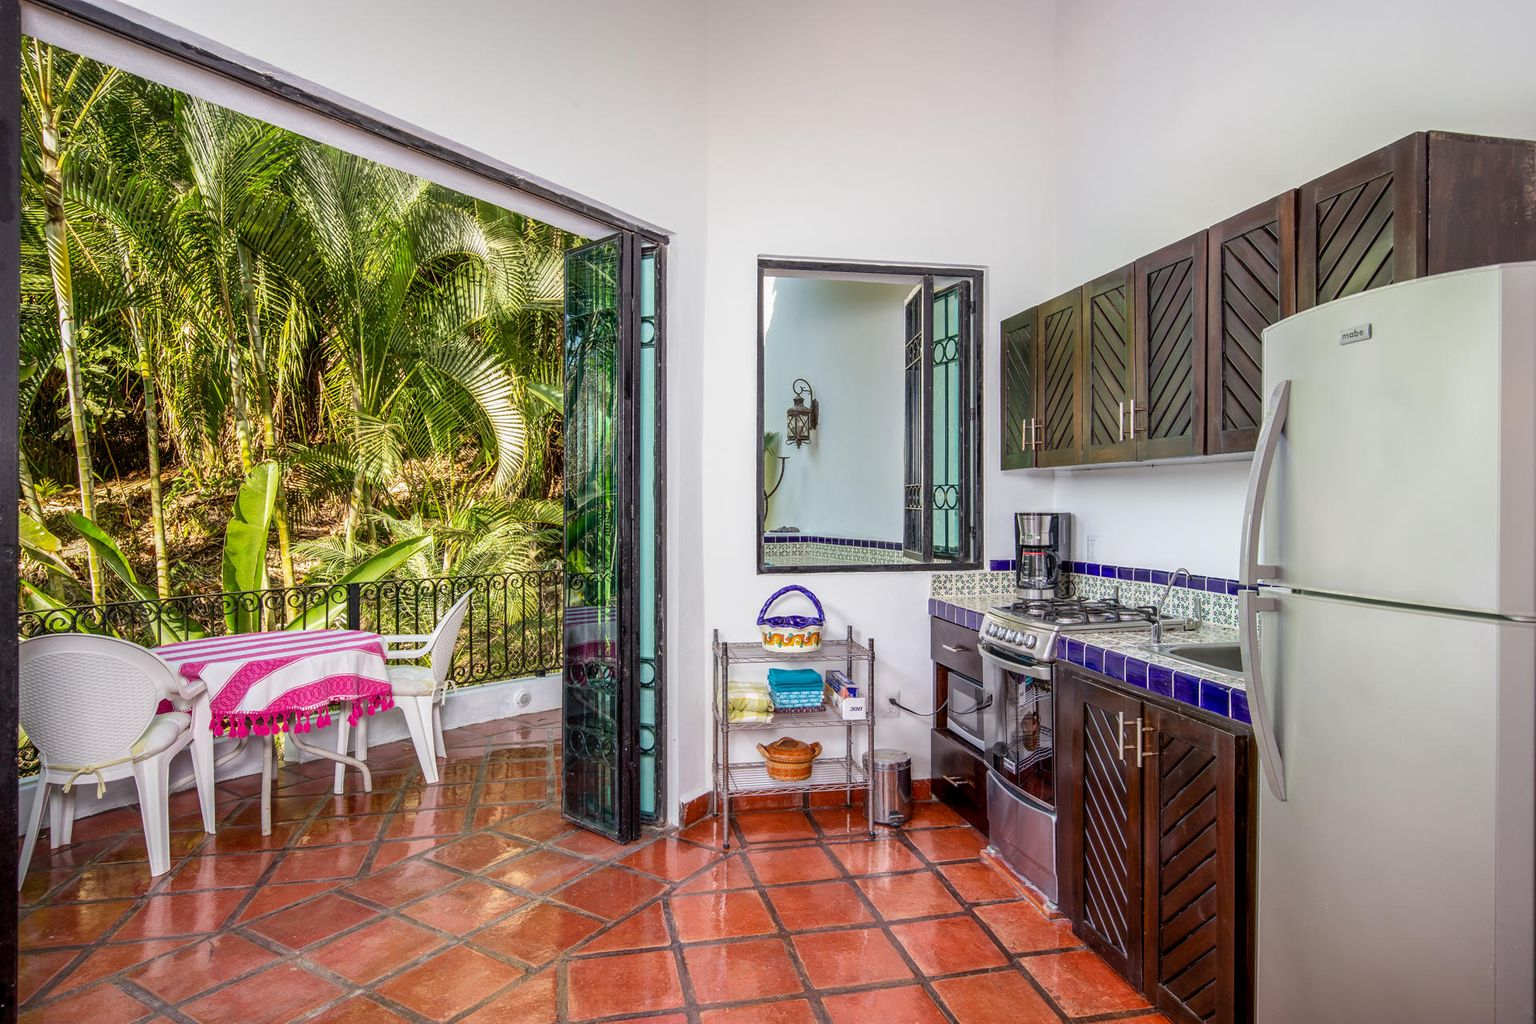 French iron doors open to the jungle and arroyo below